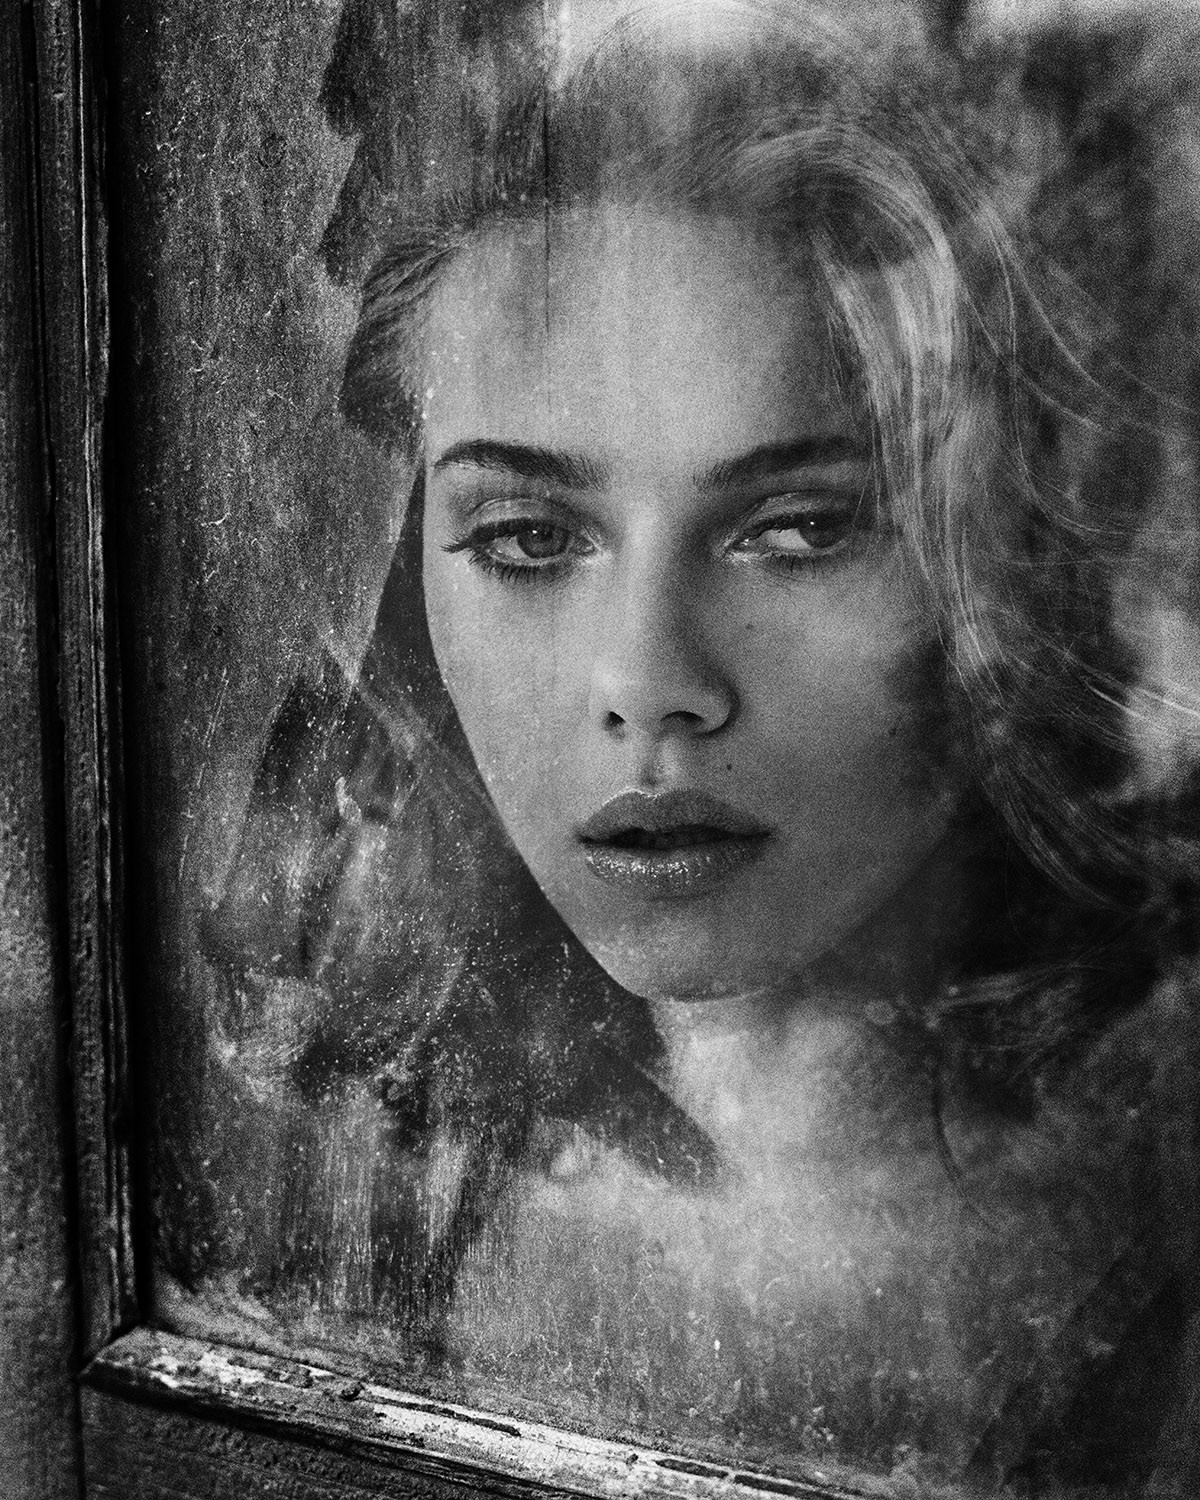 Scarlett Johansson for Vincent Peters, analog photographer and RYDE client.